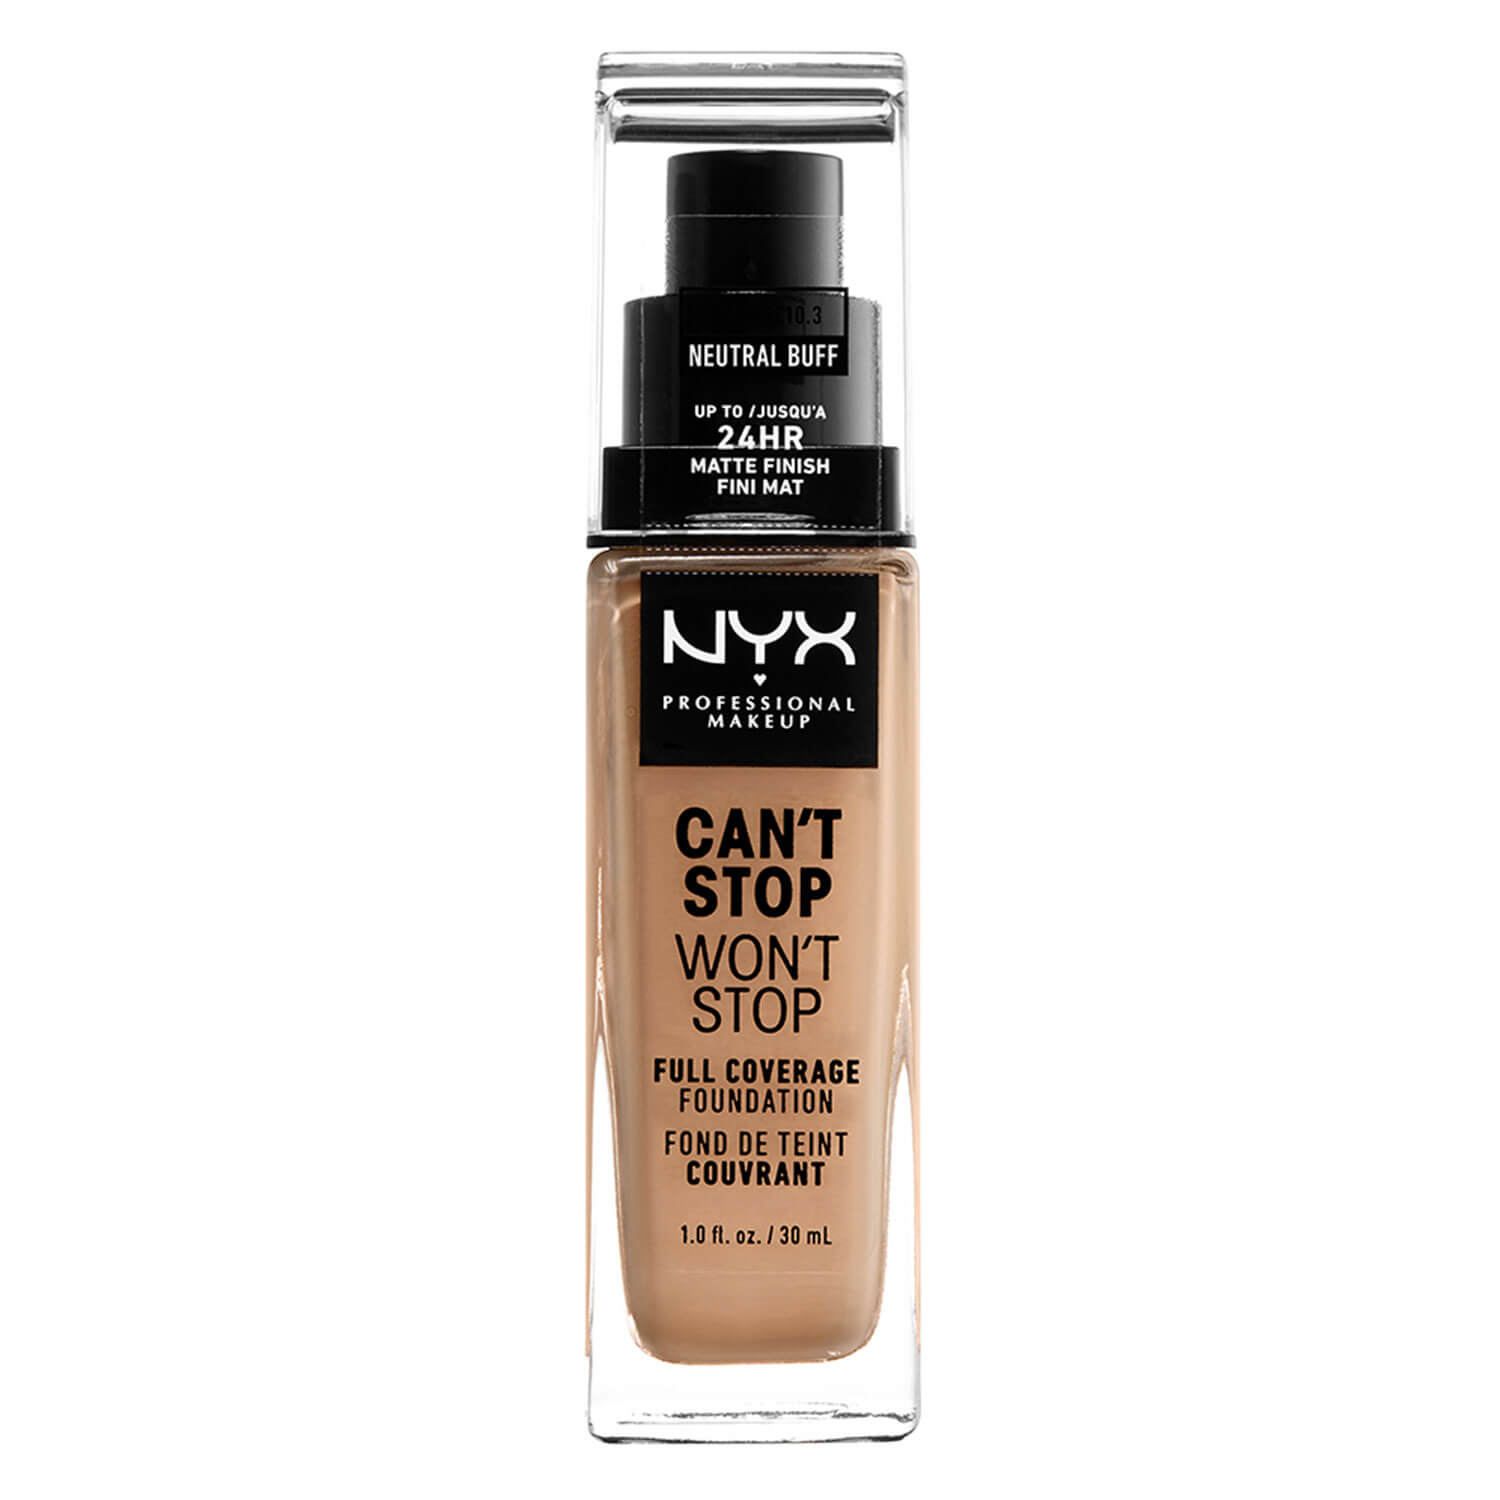 Can't Stop Won't Stop - Full Coverage Foundation Natural Buff